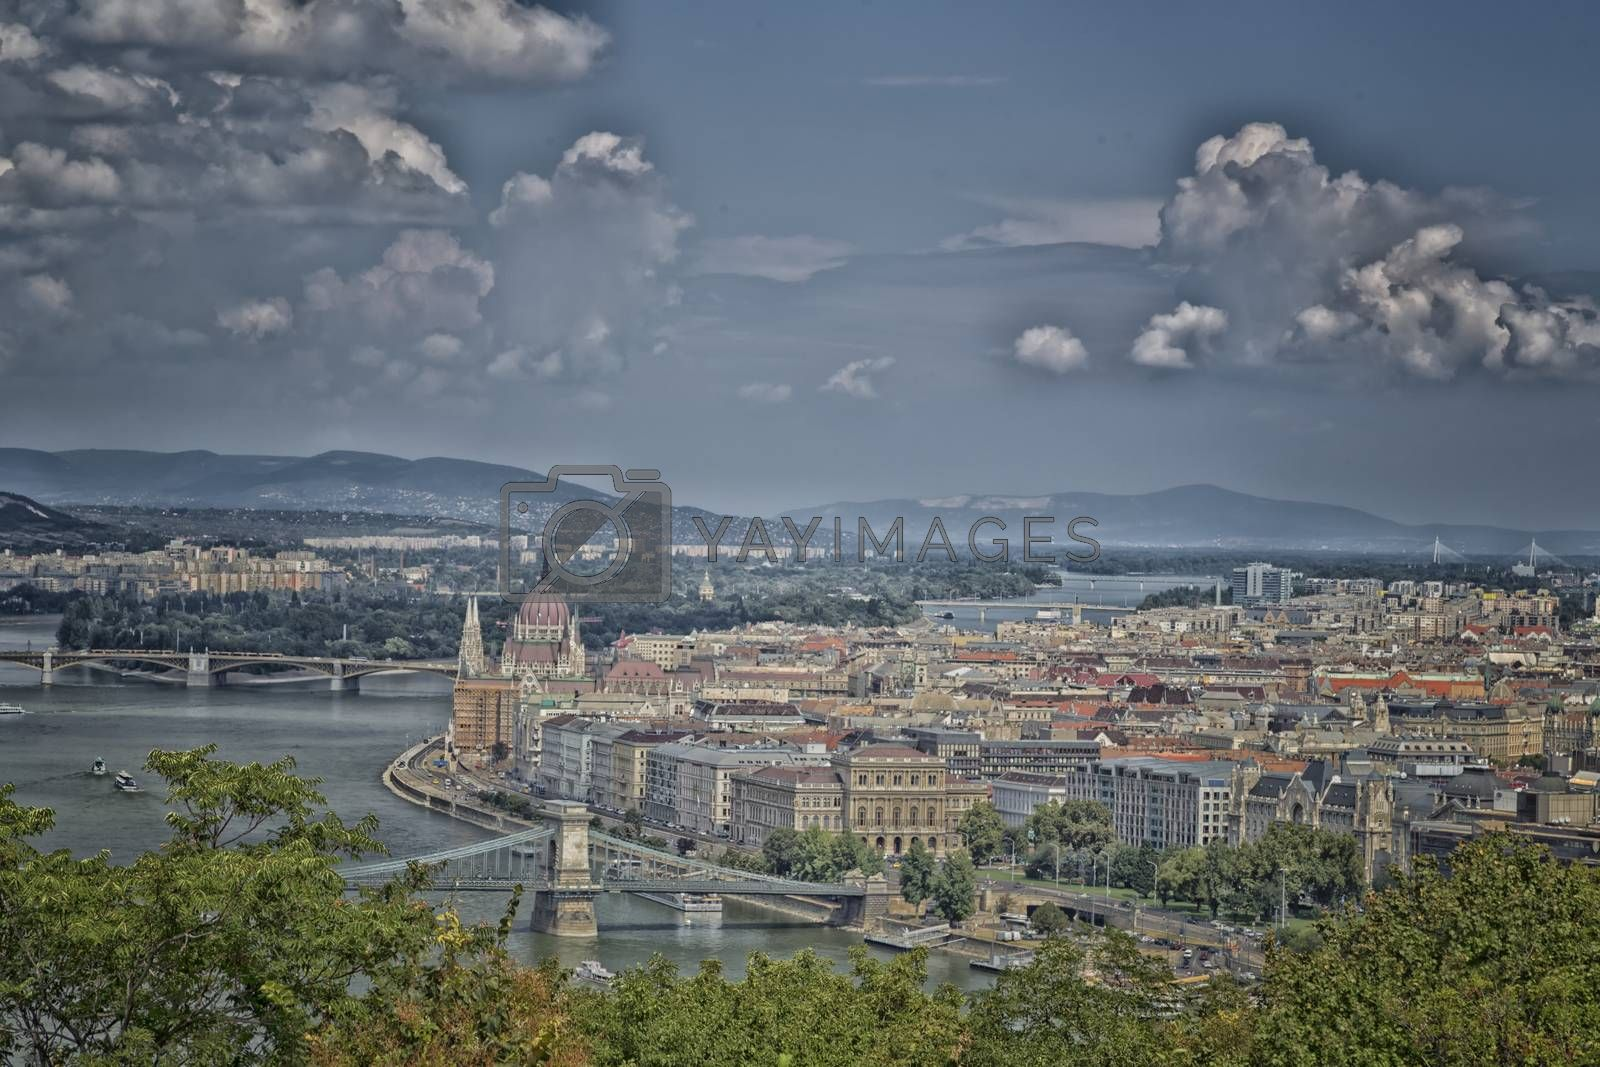 A view of the Danube river in Budapest